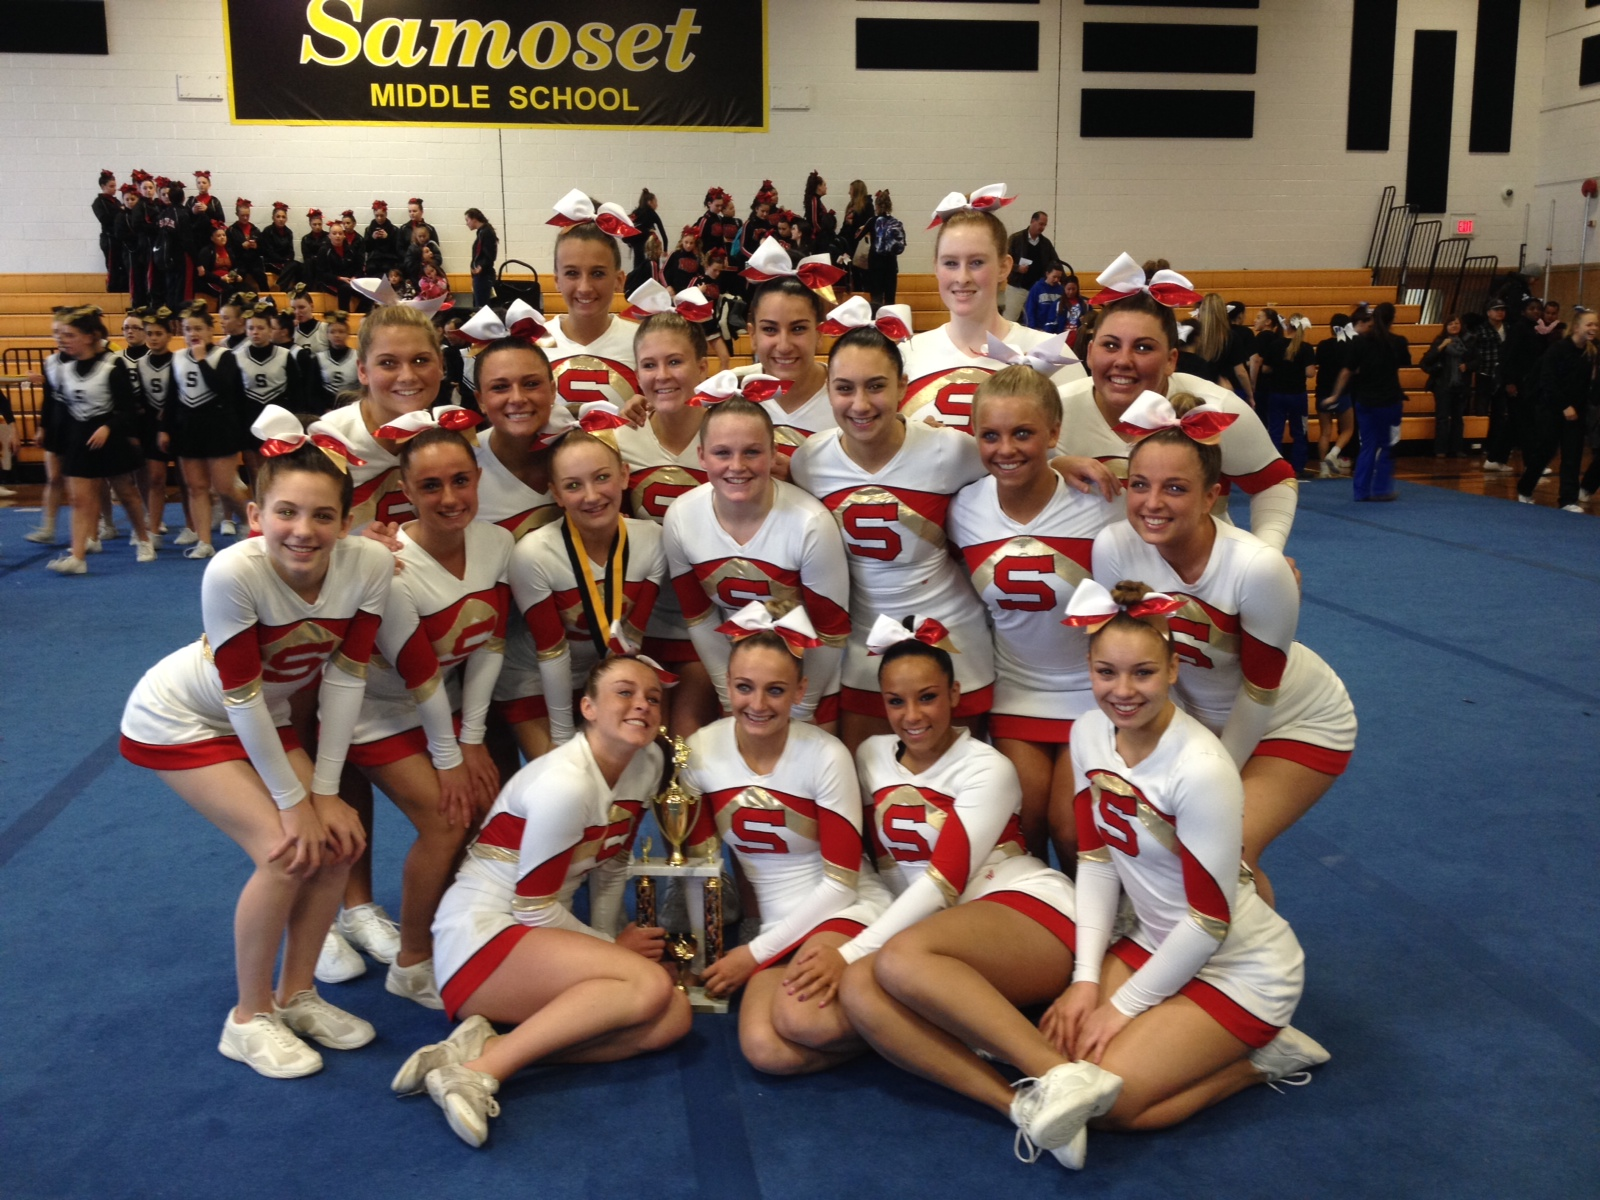 Competition of the season sunday in an event at samoset middle school